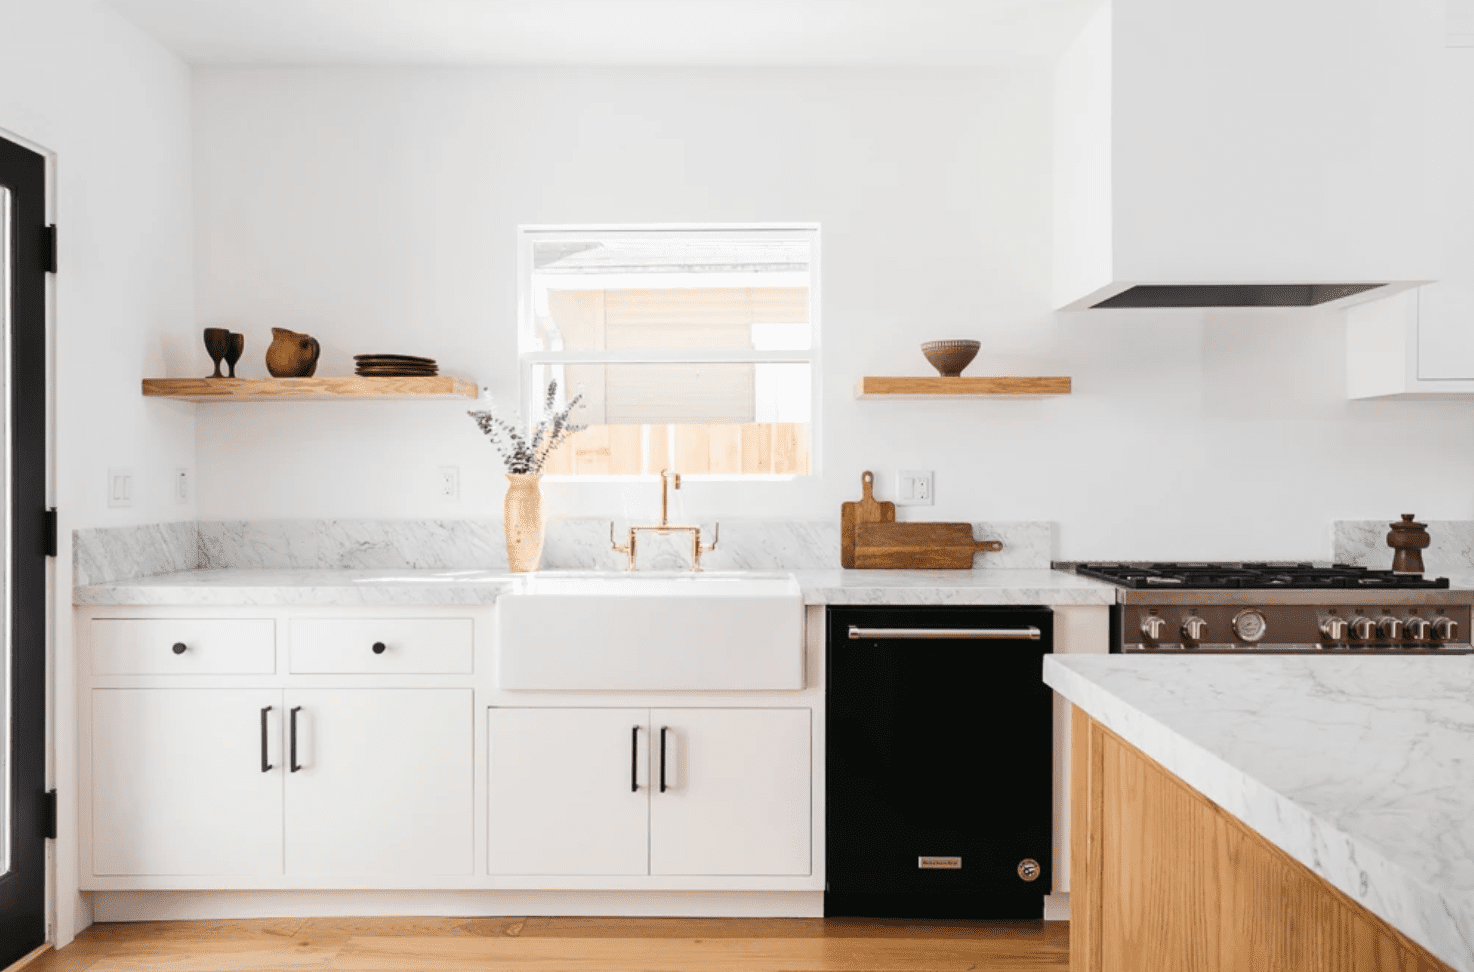 A minimalist kitchen filled with rustic wooden accents